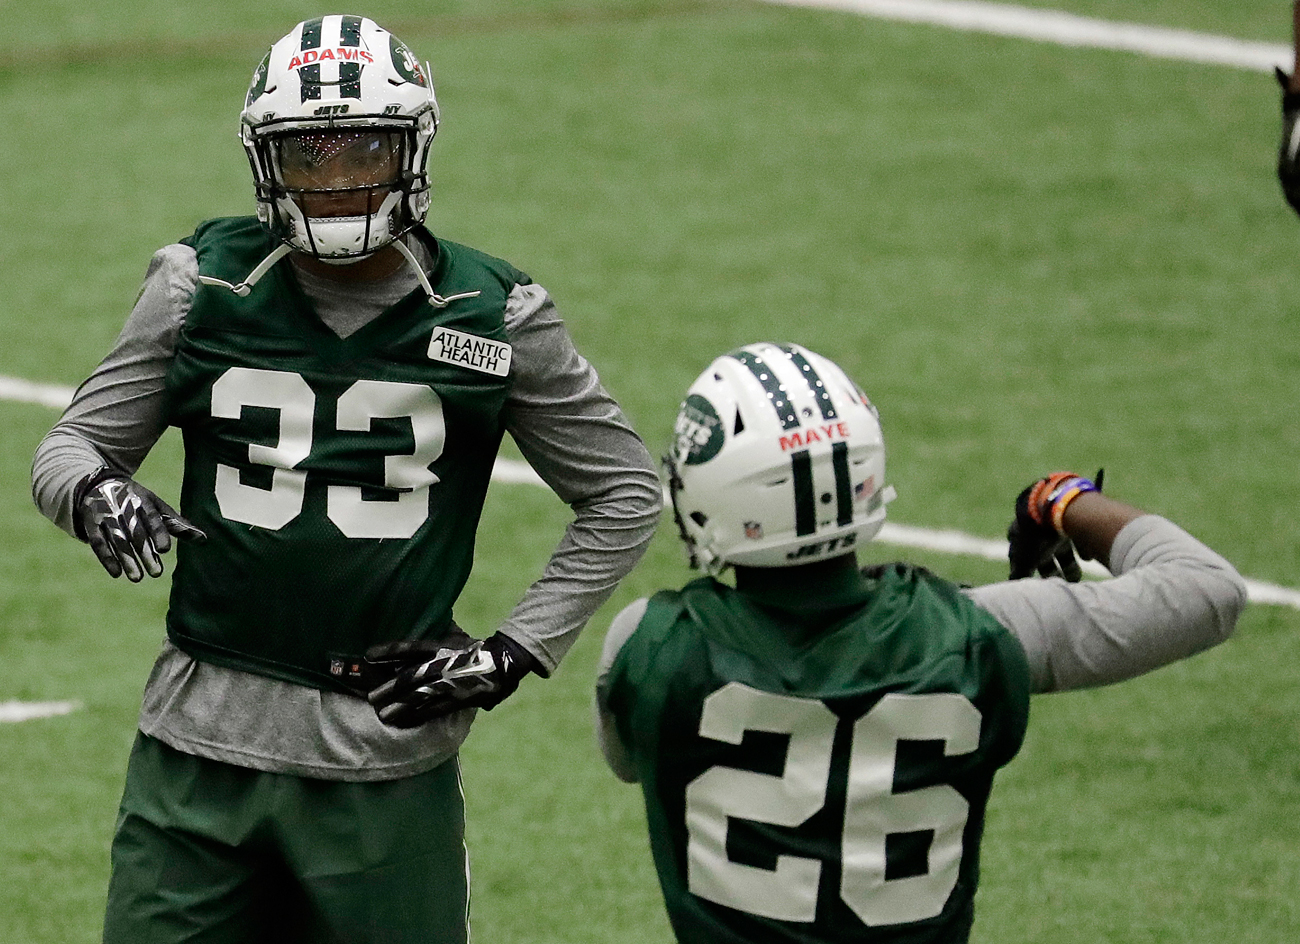 The Jets are anticipating big things from rookie defensive backs Jamal Adams (33) and Marcus Maye.